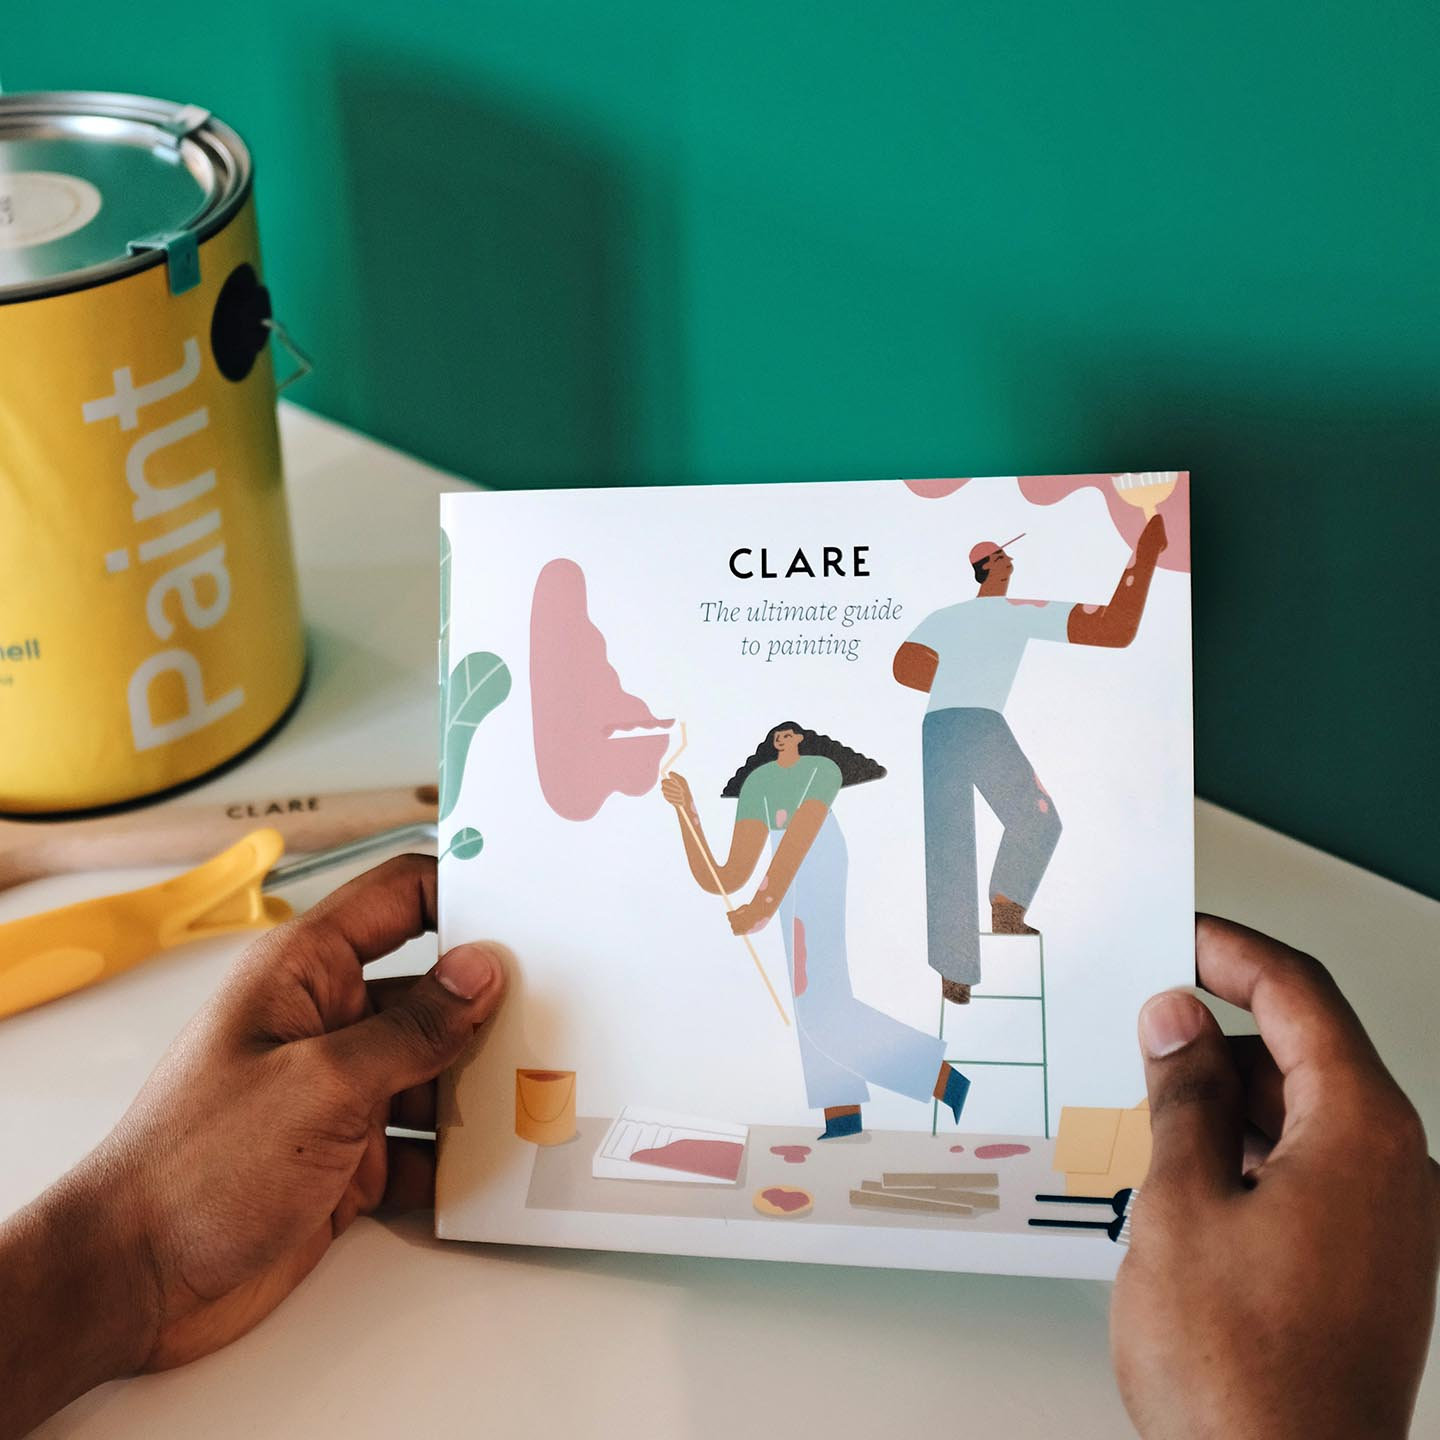 Check out our ultimate guide to buying paint online! At Clare, we make it simple to buy paint online, here's your ultimate guide to getting the most out of the process: